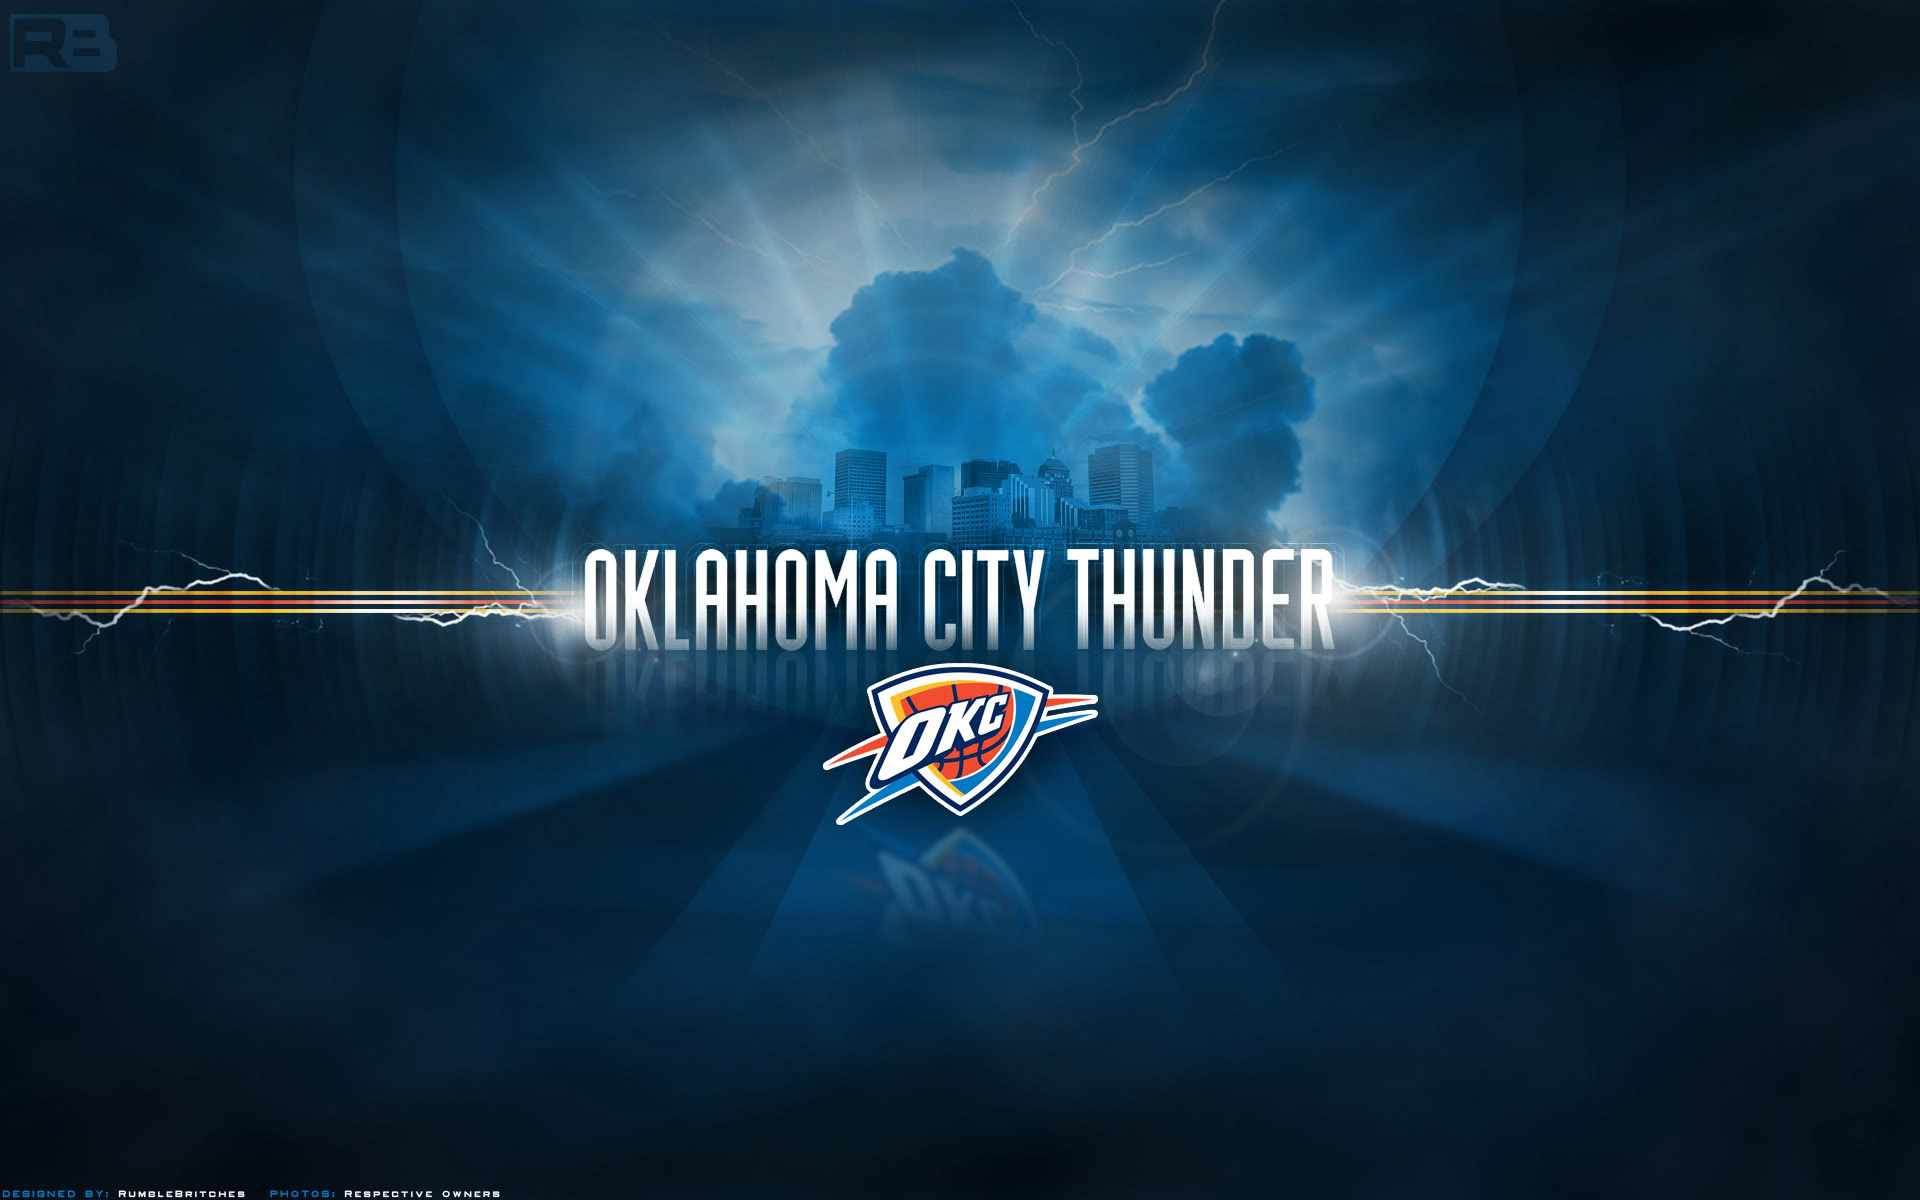 Oklahoma City Thunder Widescreen Wallpaper